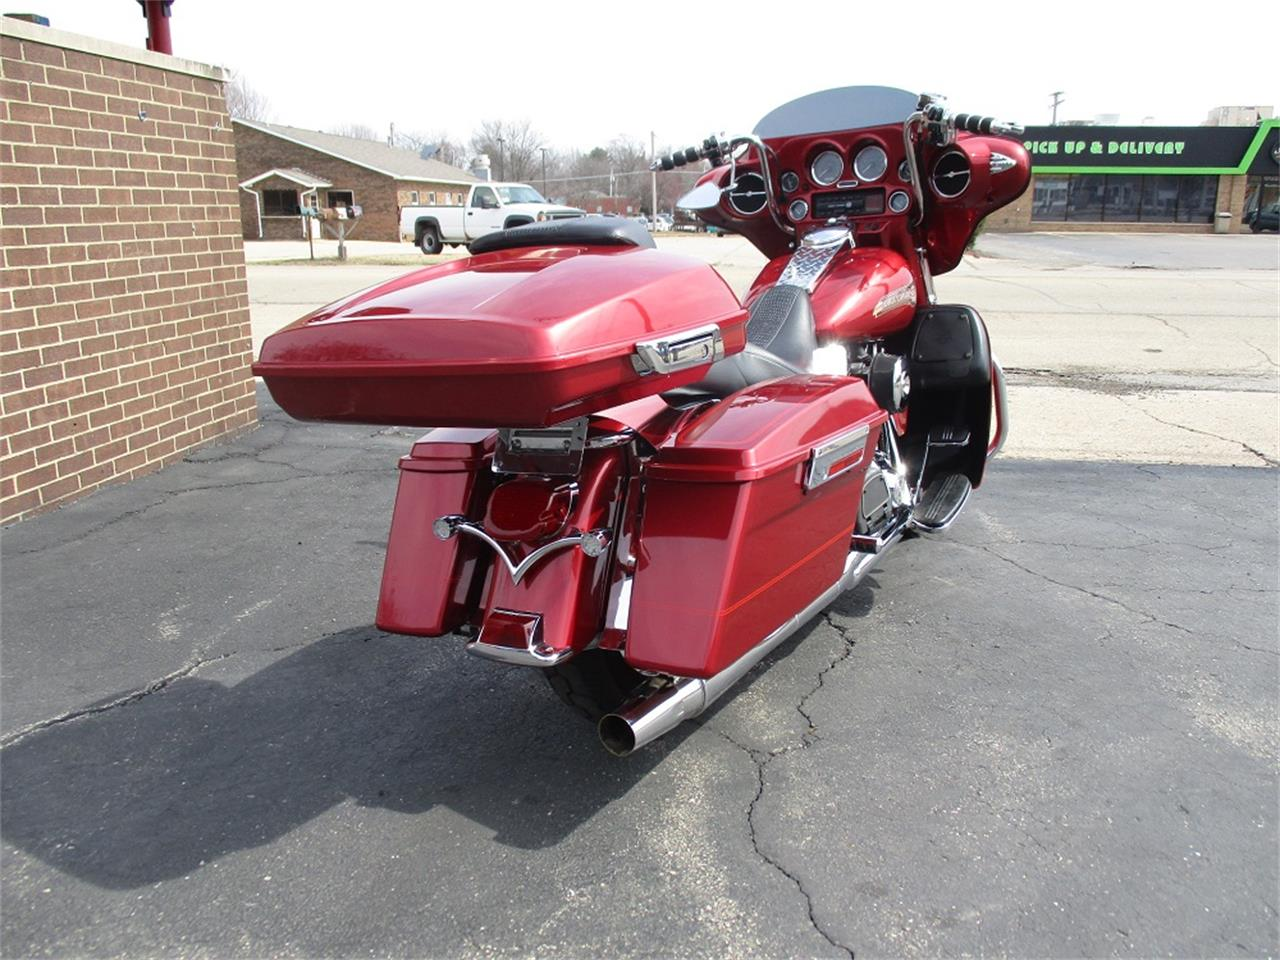 Large Picture of '05 Harley-Davidson Electra Glide located in Illinois - PR89